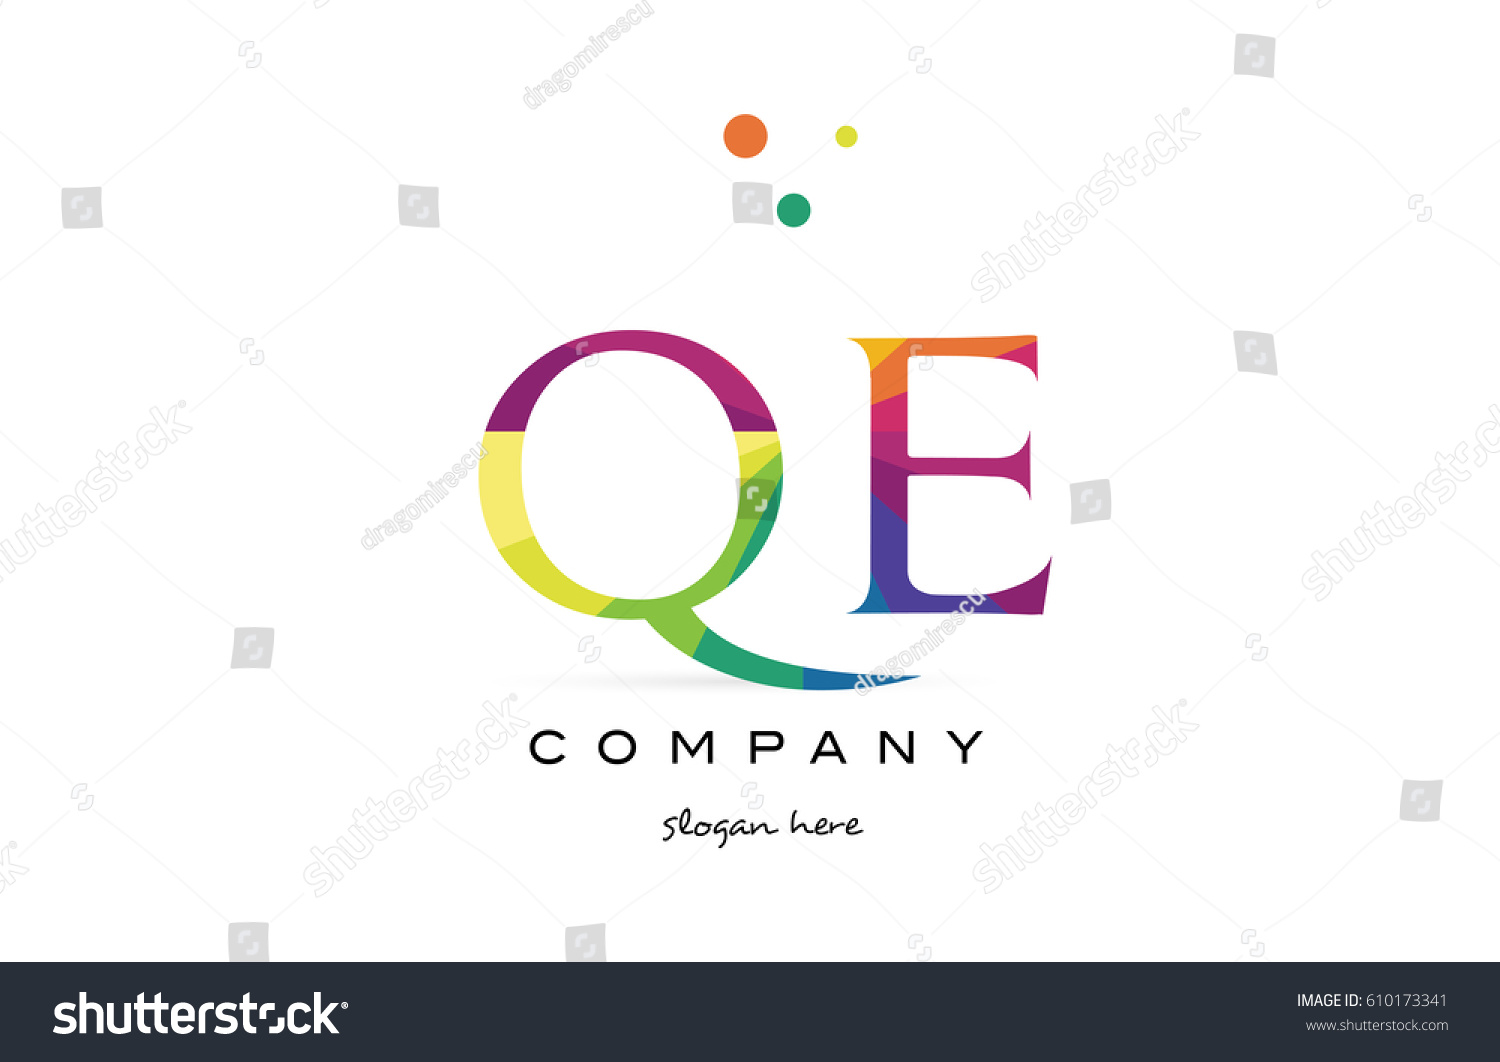 qe q e creative rainbow colors colored alphabet company letter logo design  vector icon template